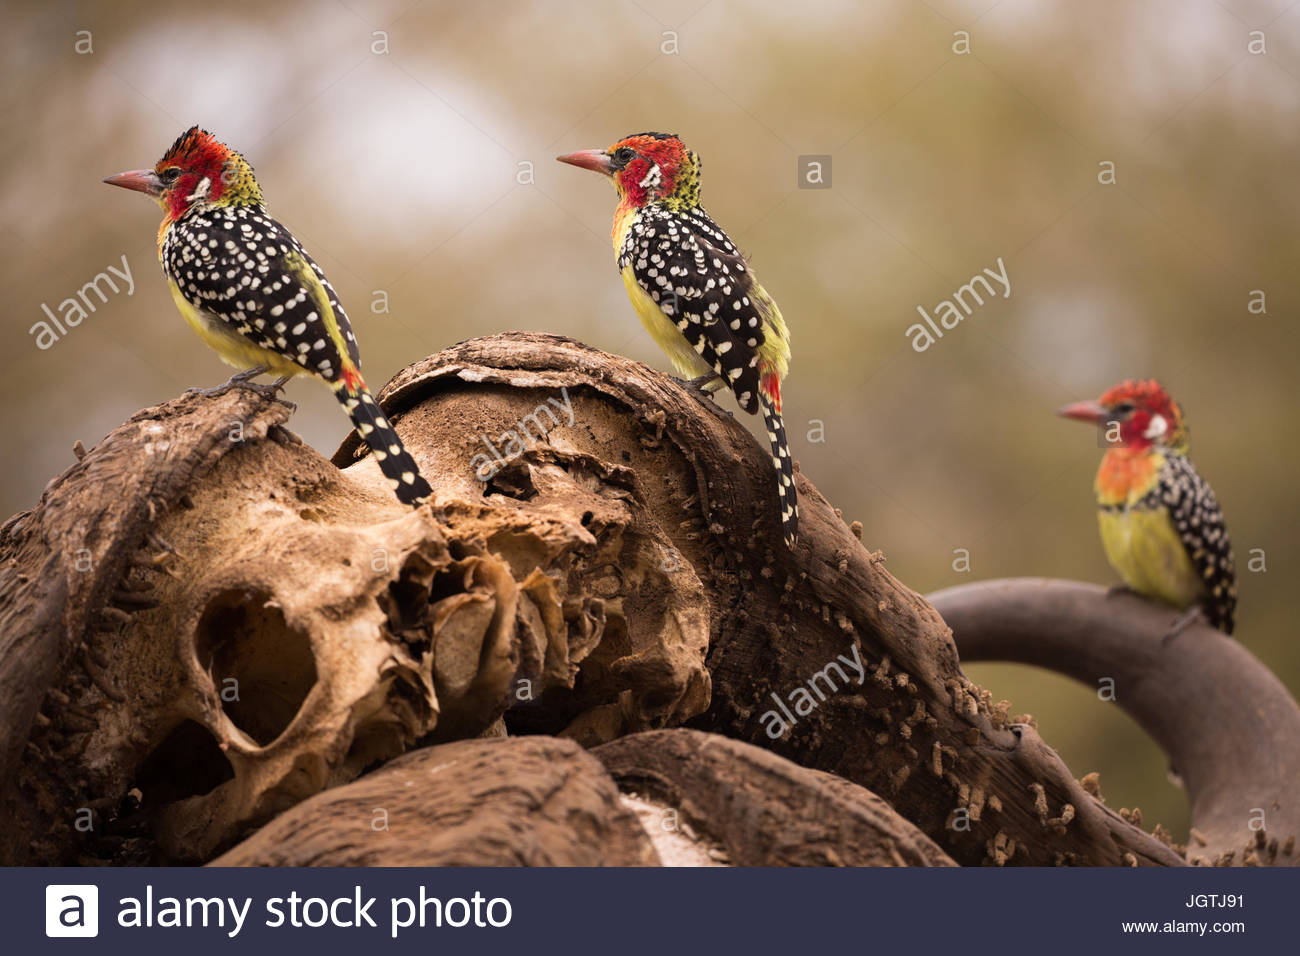 Red and yellow barbets perch on a water buffalo skull. - Stock Image